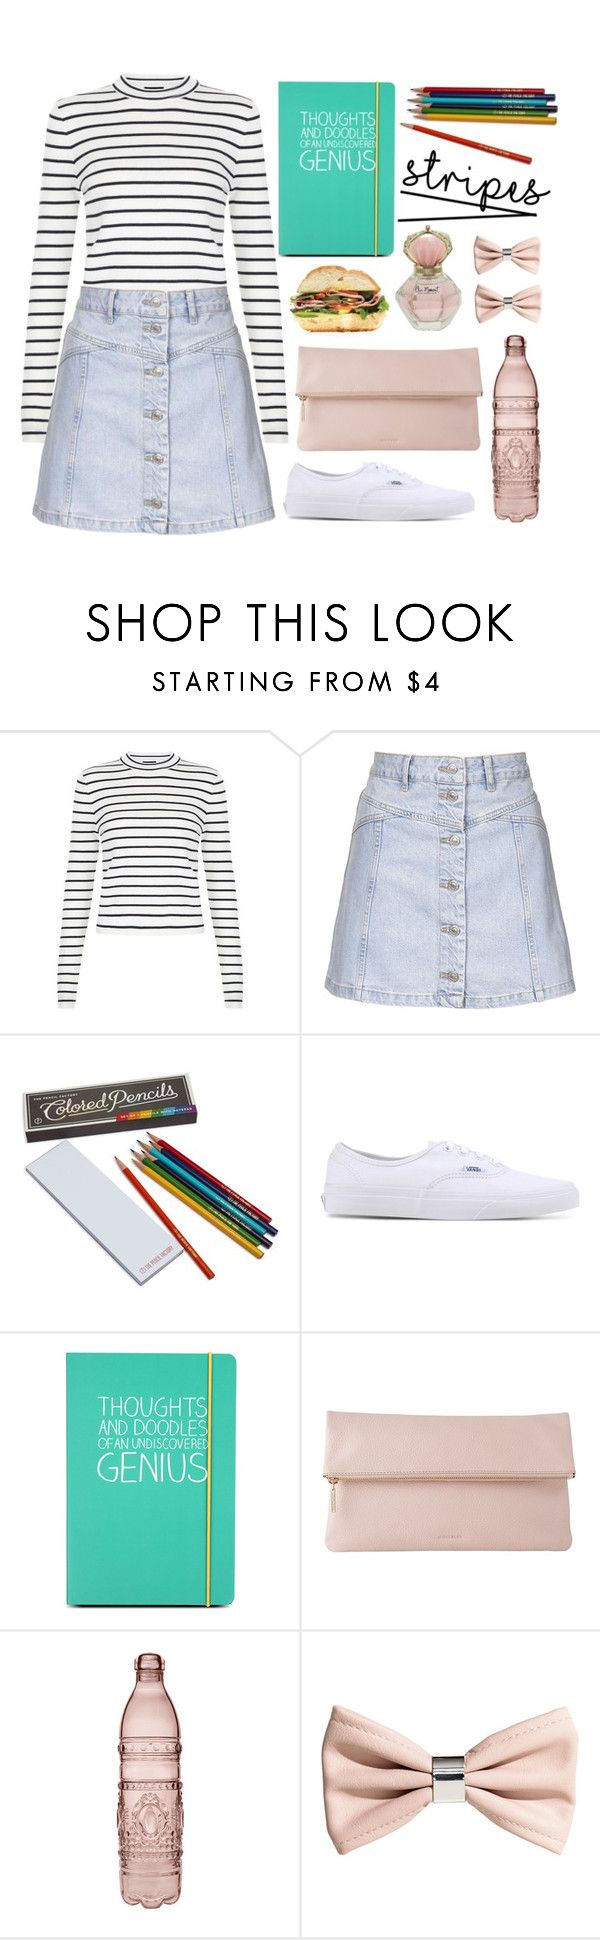 """One Direction: Striped Shirts"" by sebi86 ❤ liked on Polyvore featuring mode, Topshop, Hester & Cook, Vans, Happy Jackson, Whistles, Baci, H&M en stripes"